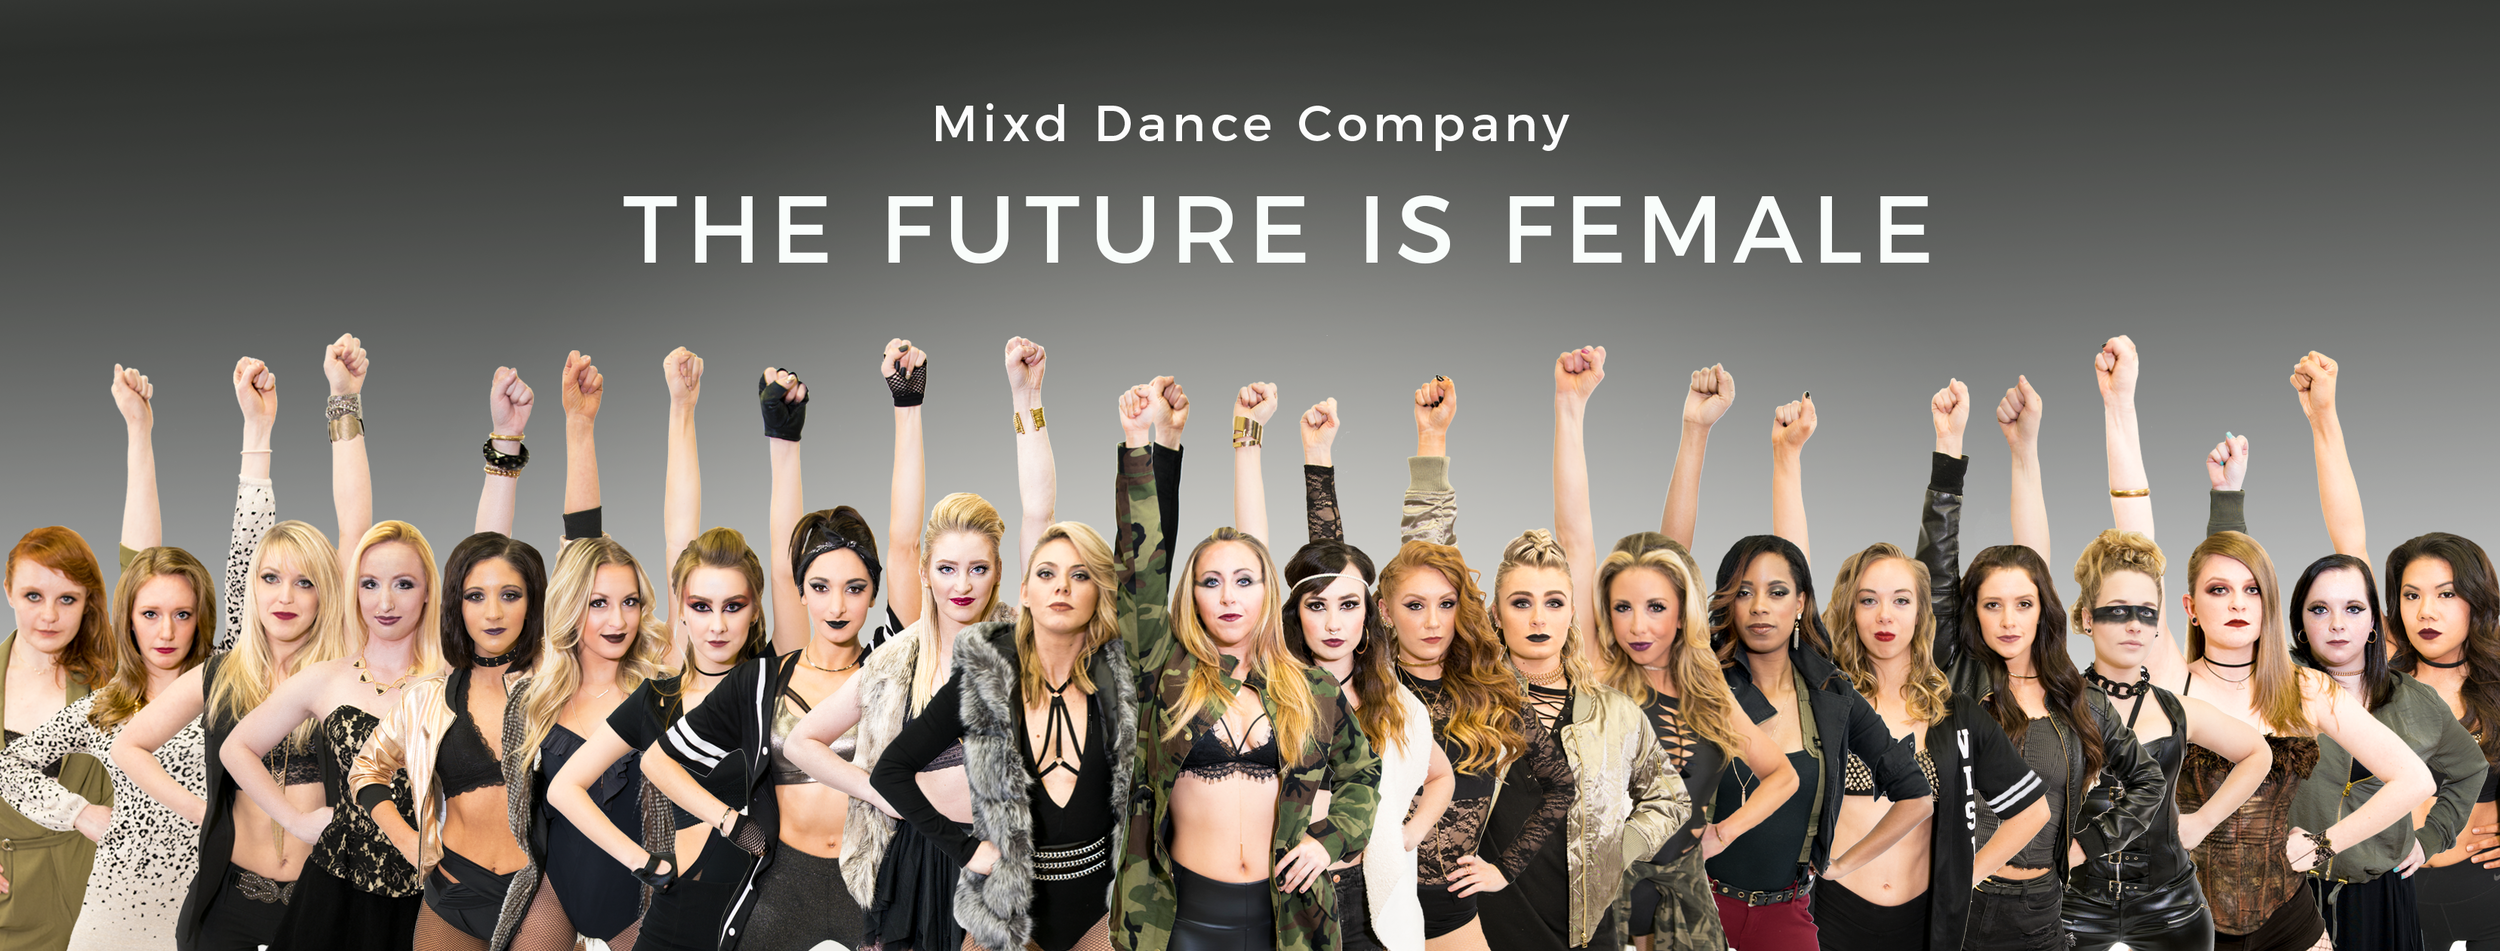 FIF_Mixd_Facebook_Cover.png